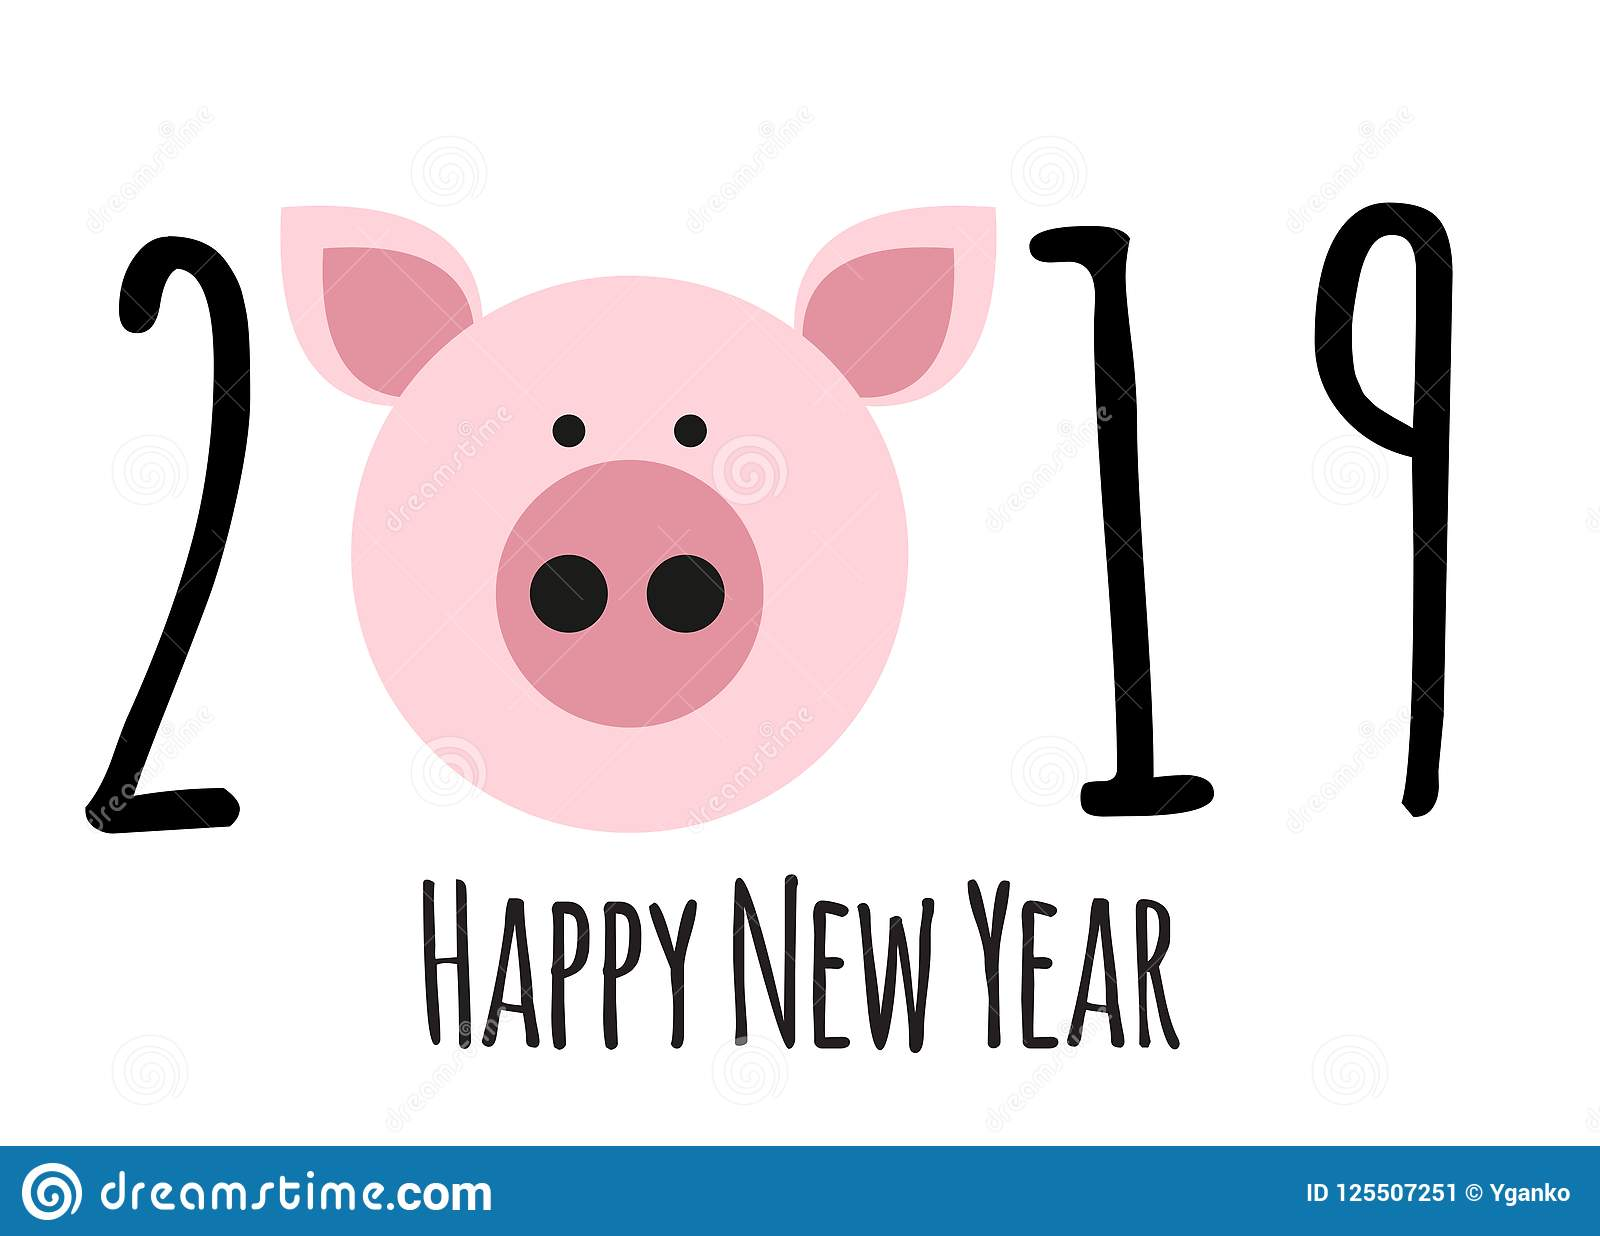 Happy New Year 2019 Cute Card Design With Cartoon Pig